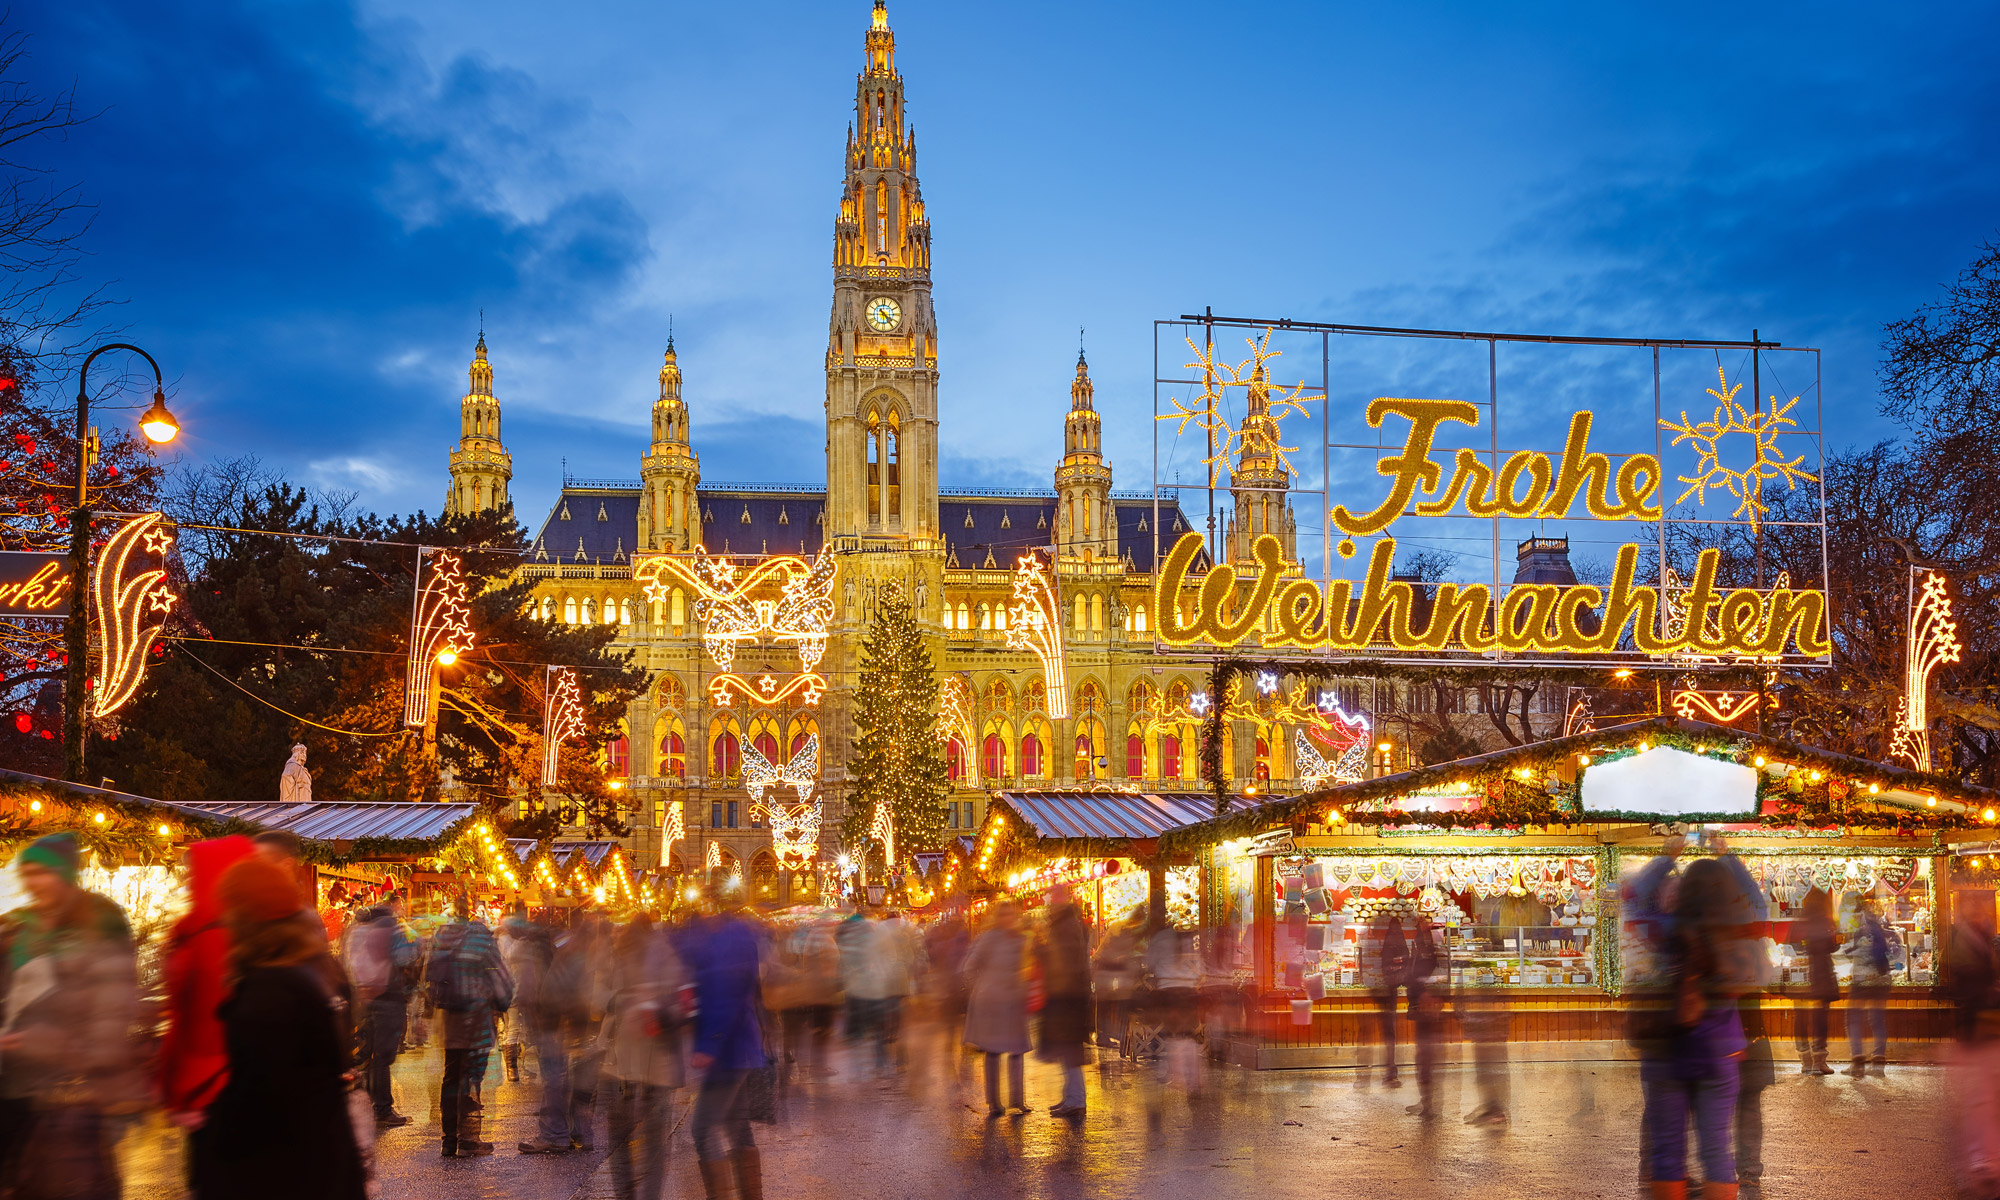 Enjoy the World-Famous Viennese Dream Christmas Market